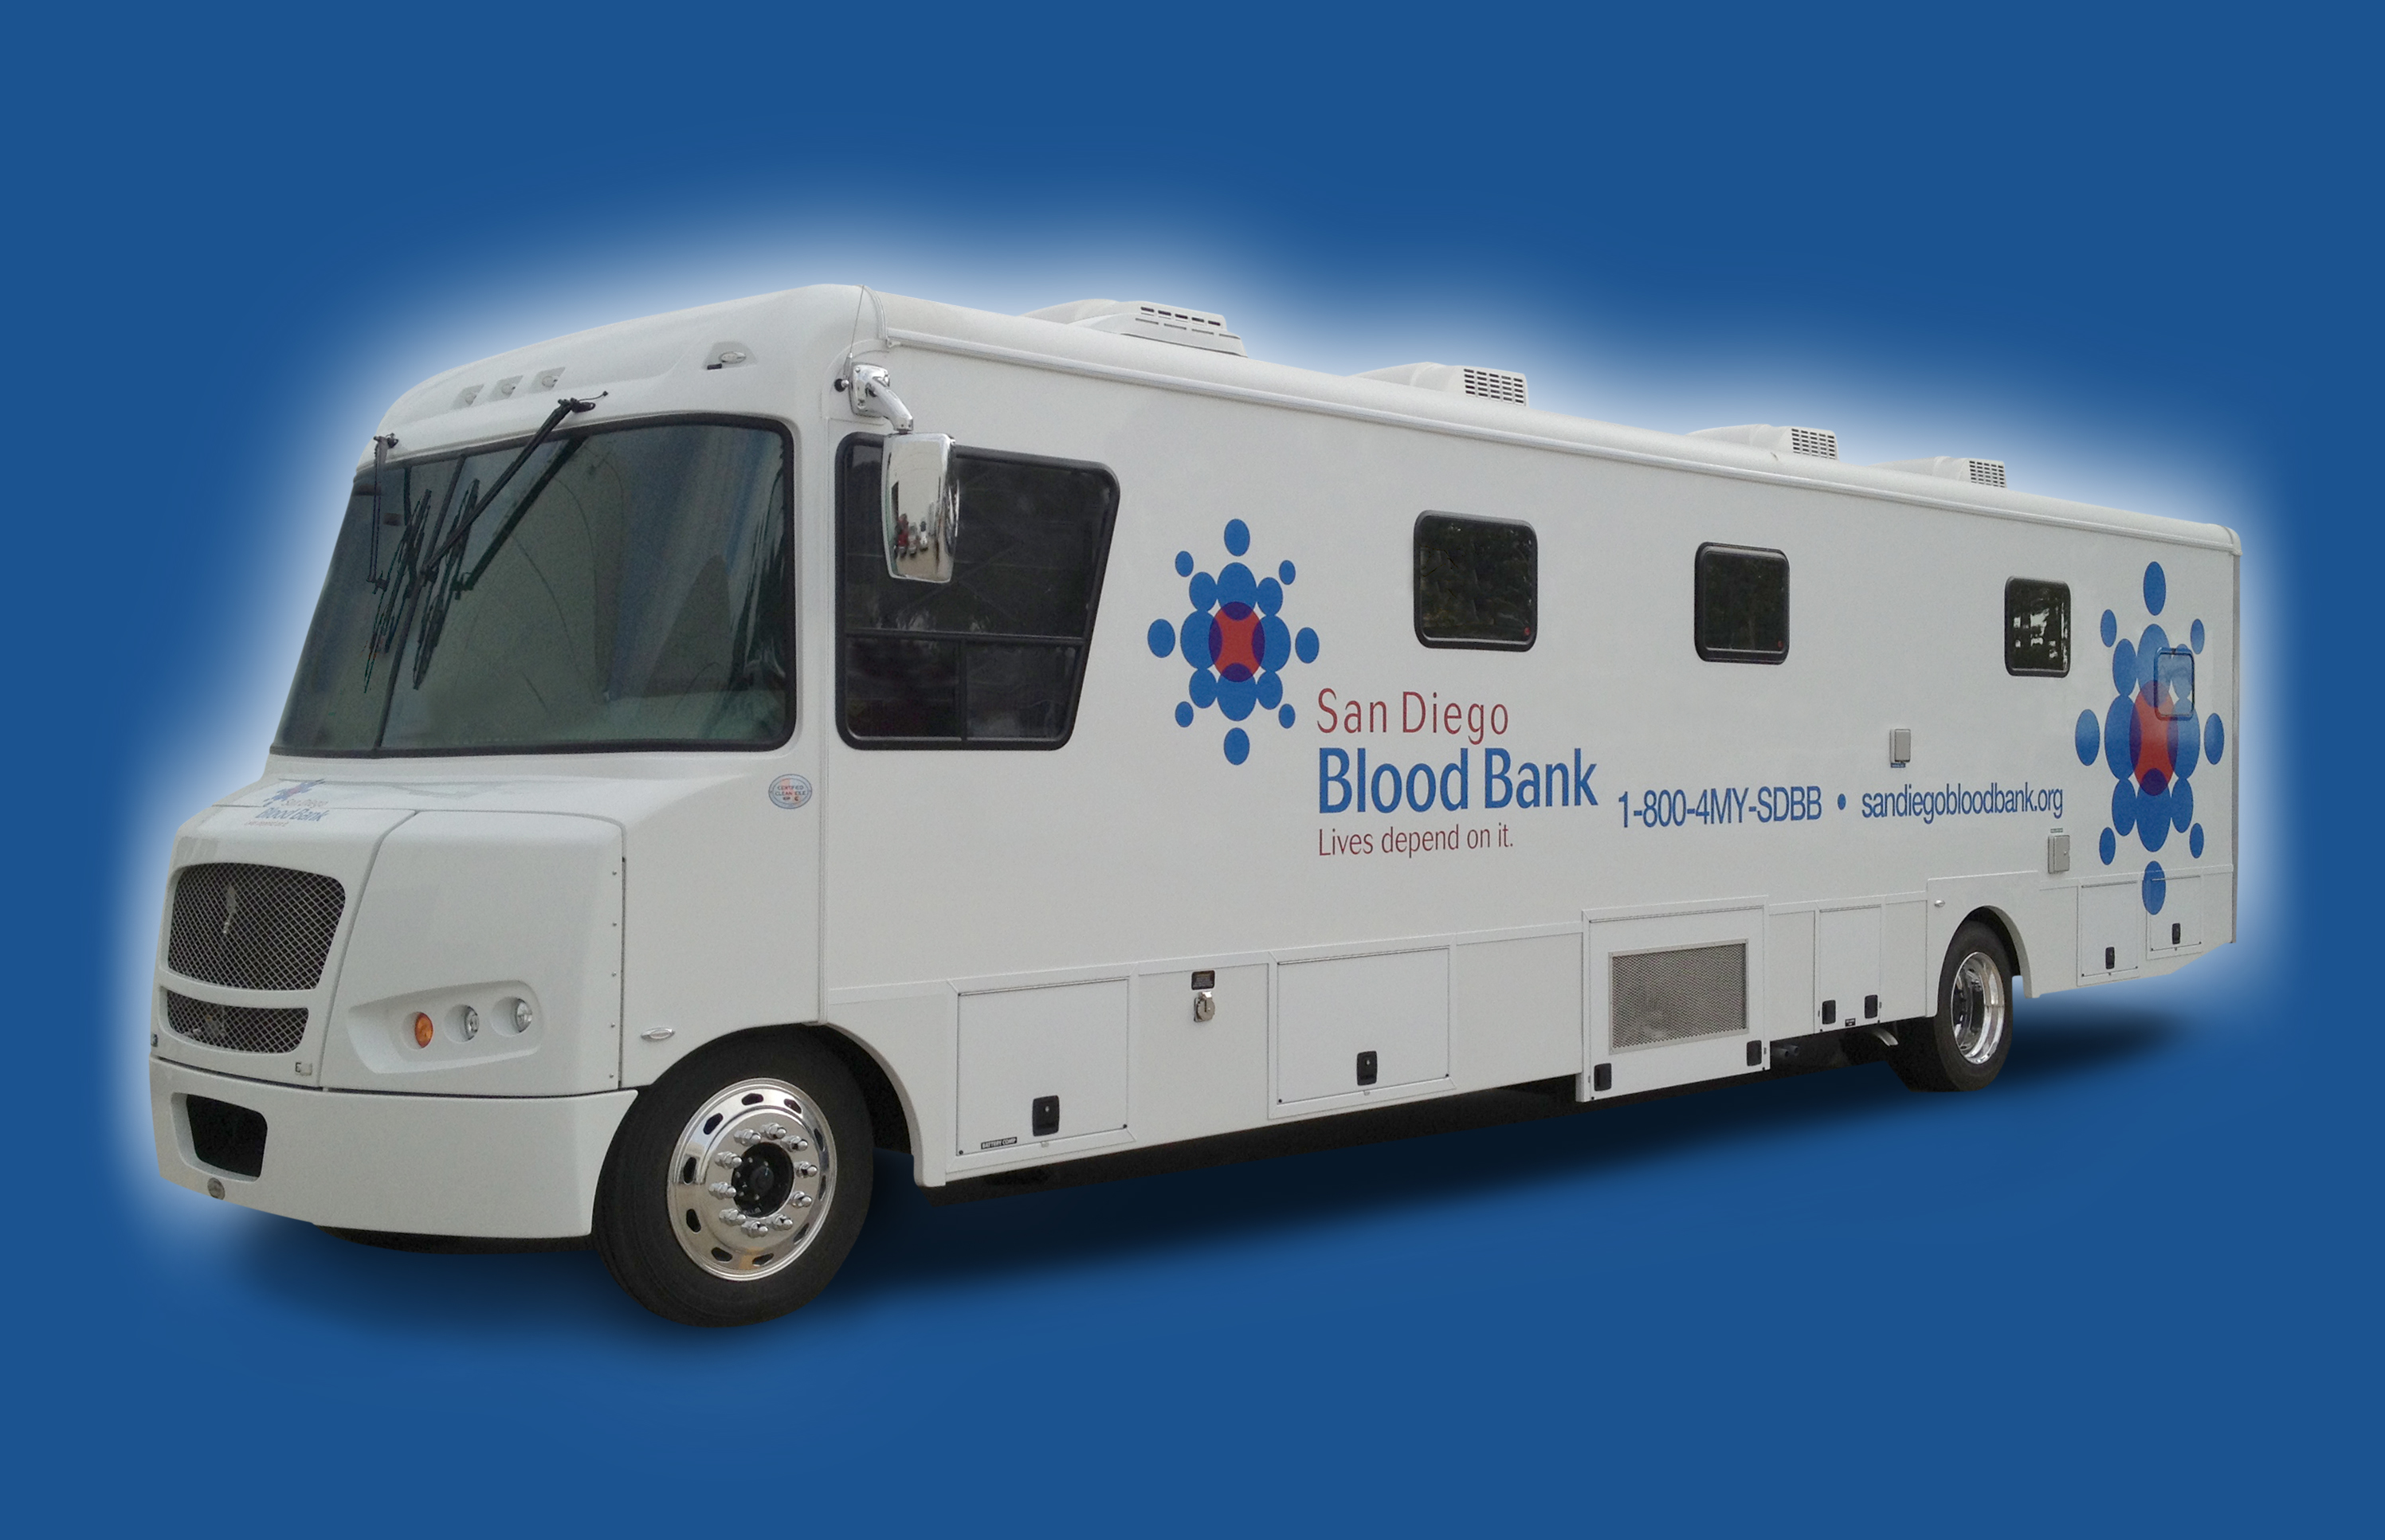 The $258,000 San Diego Blood Bank Blood Mobile